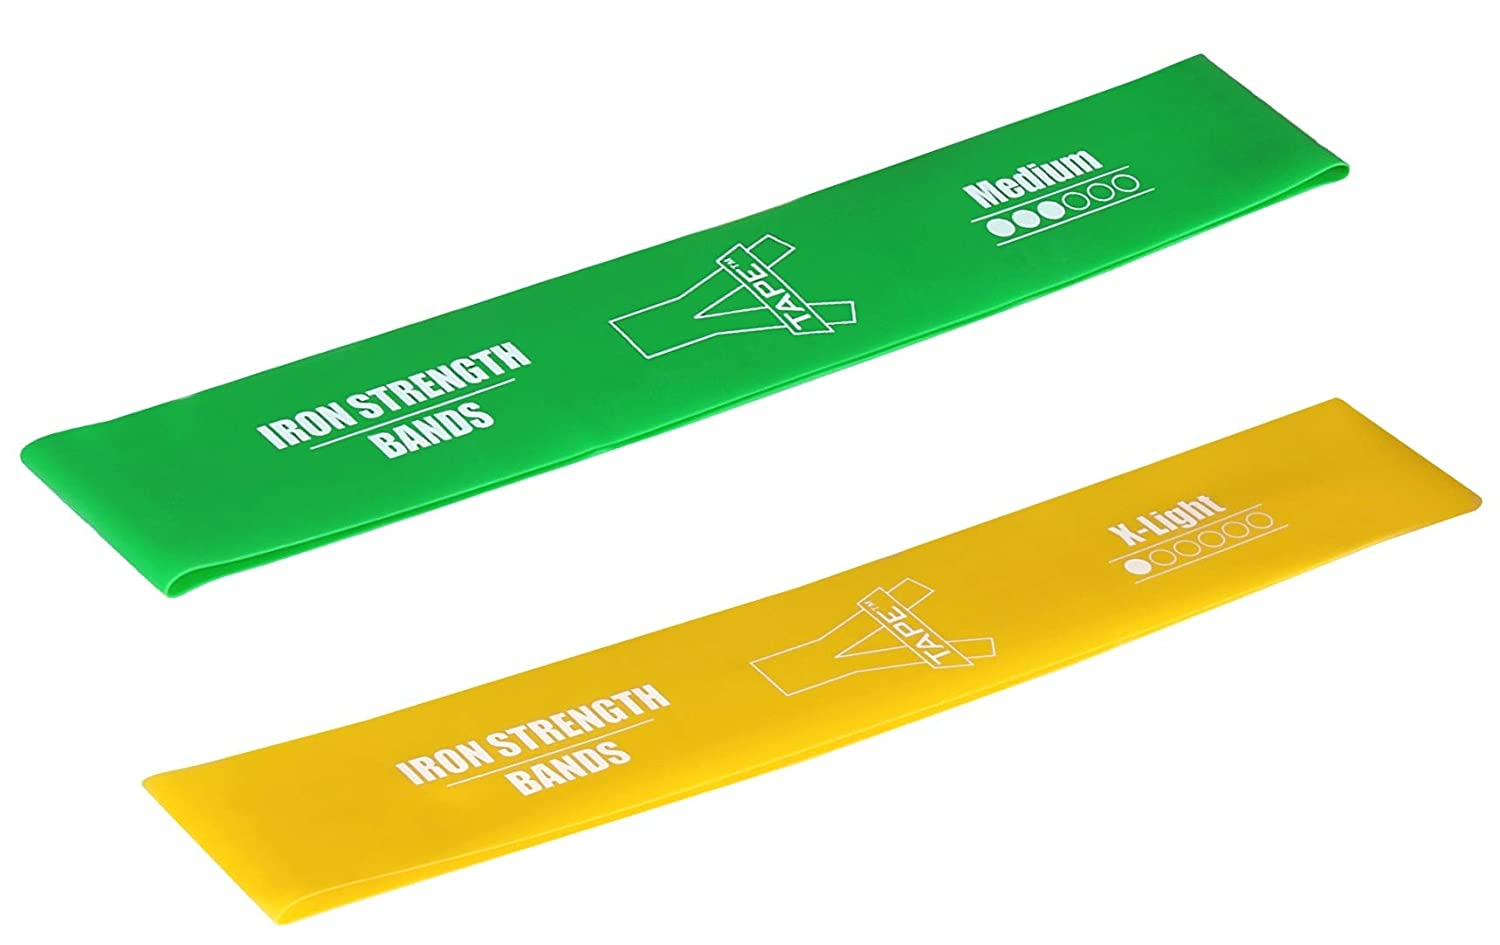 A Tape Exercise Sports Loop Band Medium X Light  Green Yellow, Pack of 2  Resistance Band